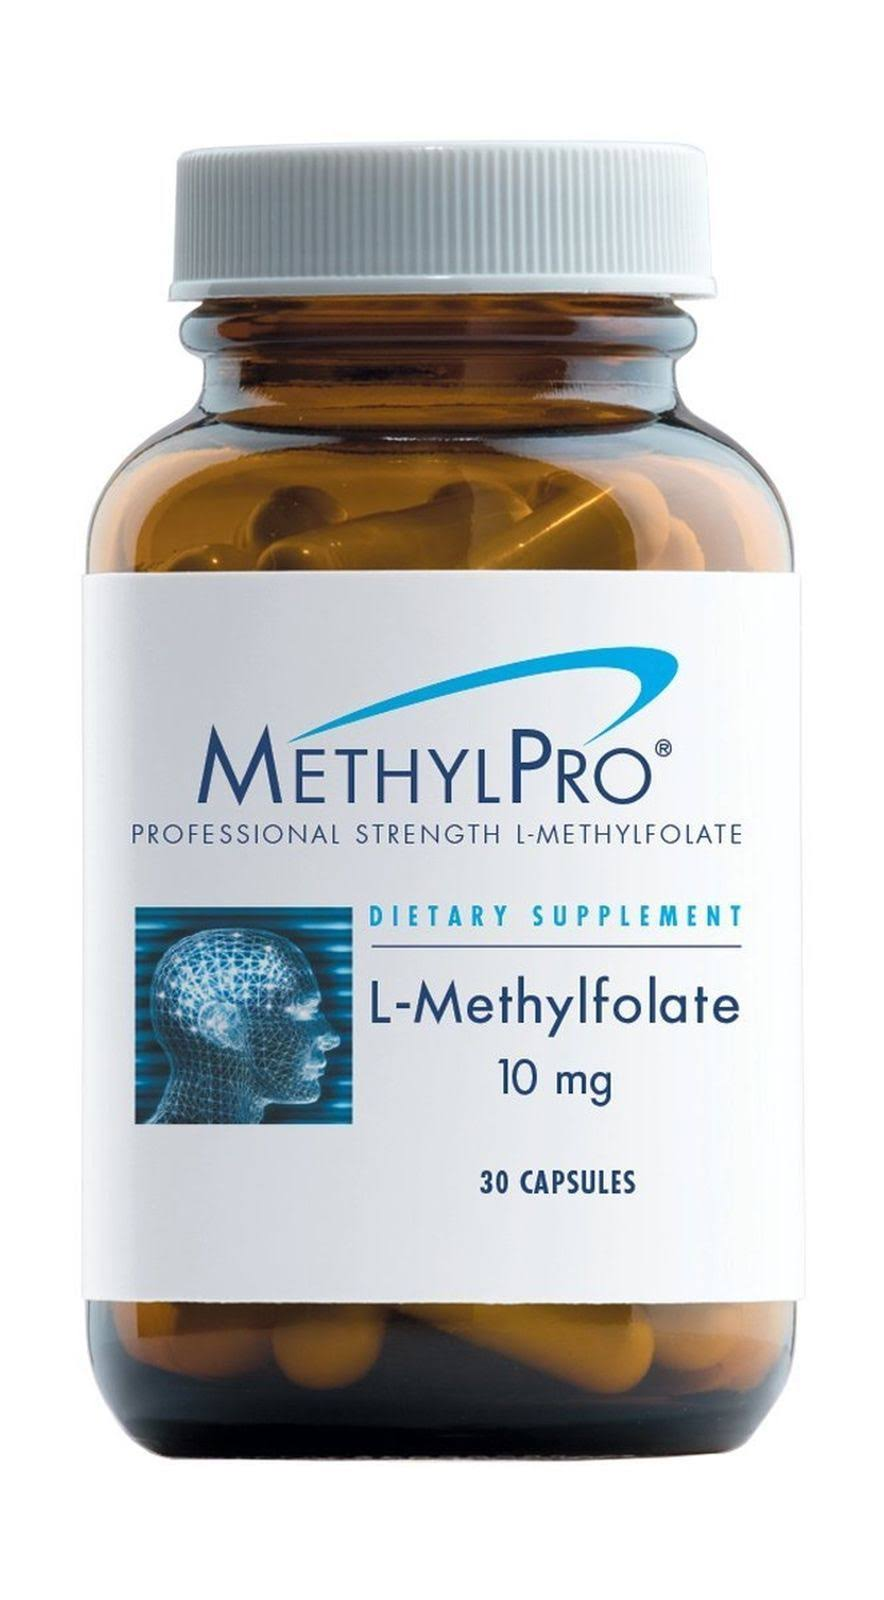 Methyl Pro Professional Strength L Methylfolate Dietary Supplement - 30ct